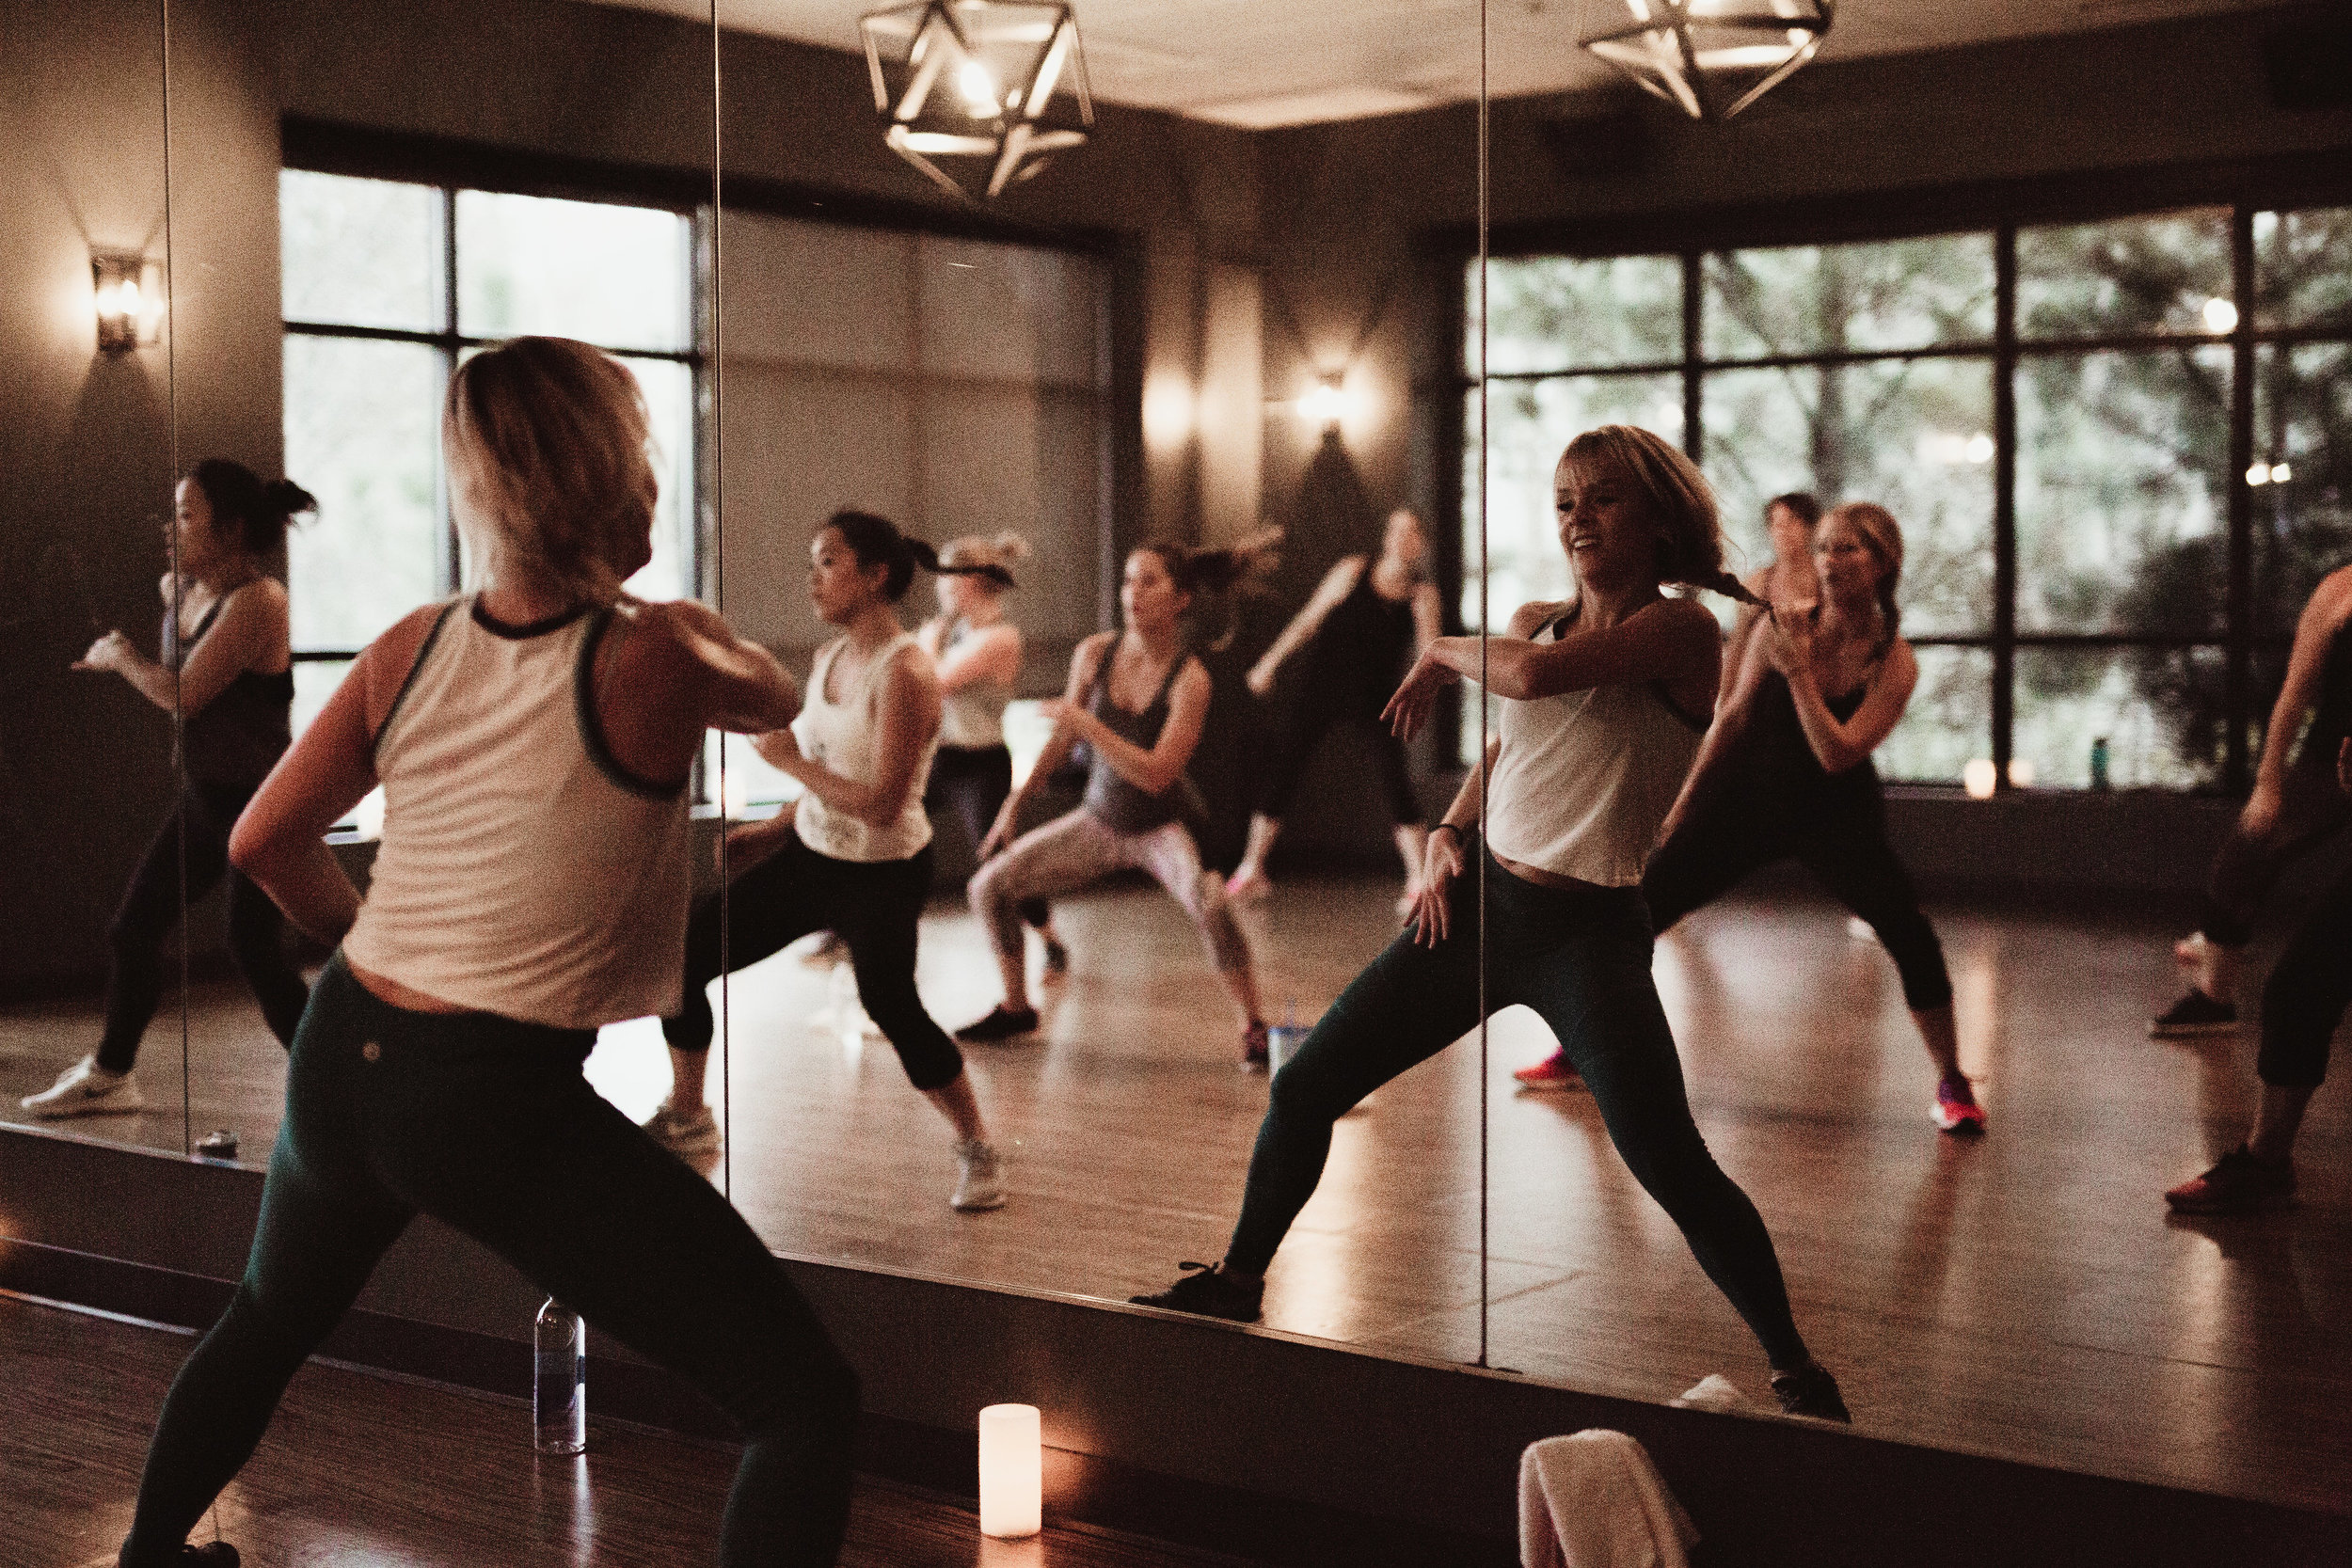 - We love private events. Office outings, bachelorette parties, birthdays - we do it all, and we do it how you want it done. Champagne and yoga? We got you. Cardio Dance? Let's do it. We love to entertain as much as we love to sweat.